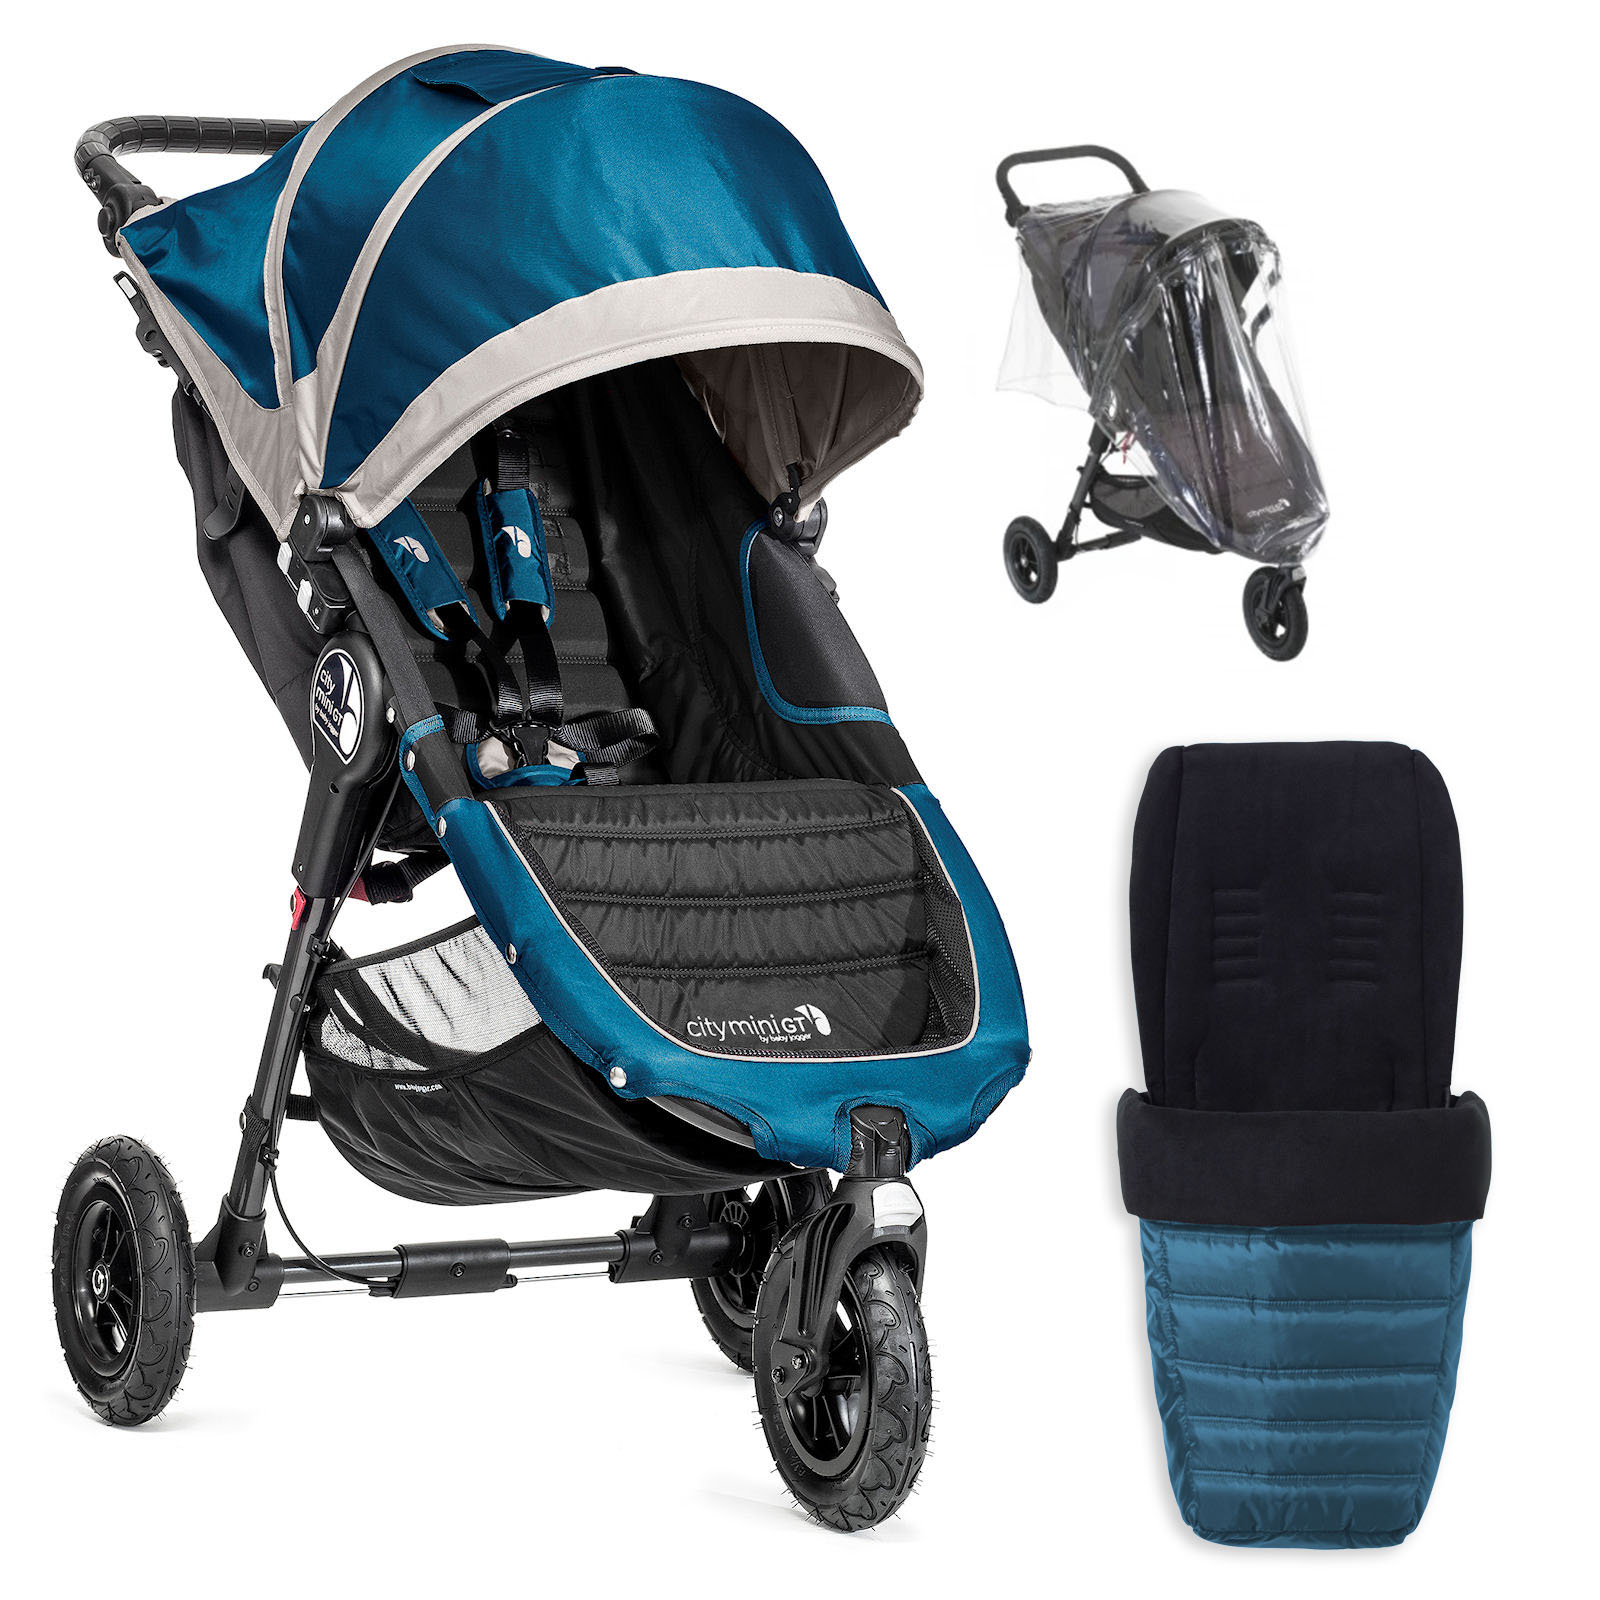 Baby Jogger City Mini GT Single Stroller With Footmuff & Raincover - Teal | Buy at Online4baby